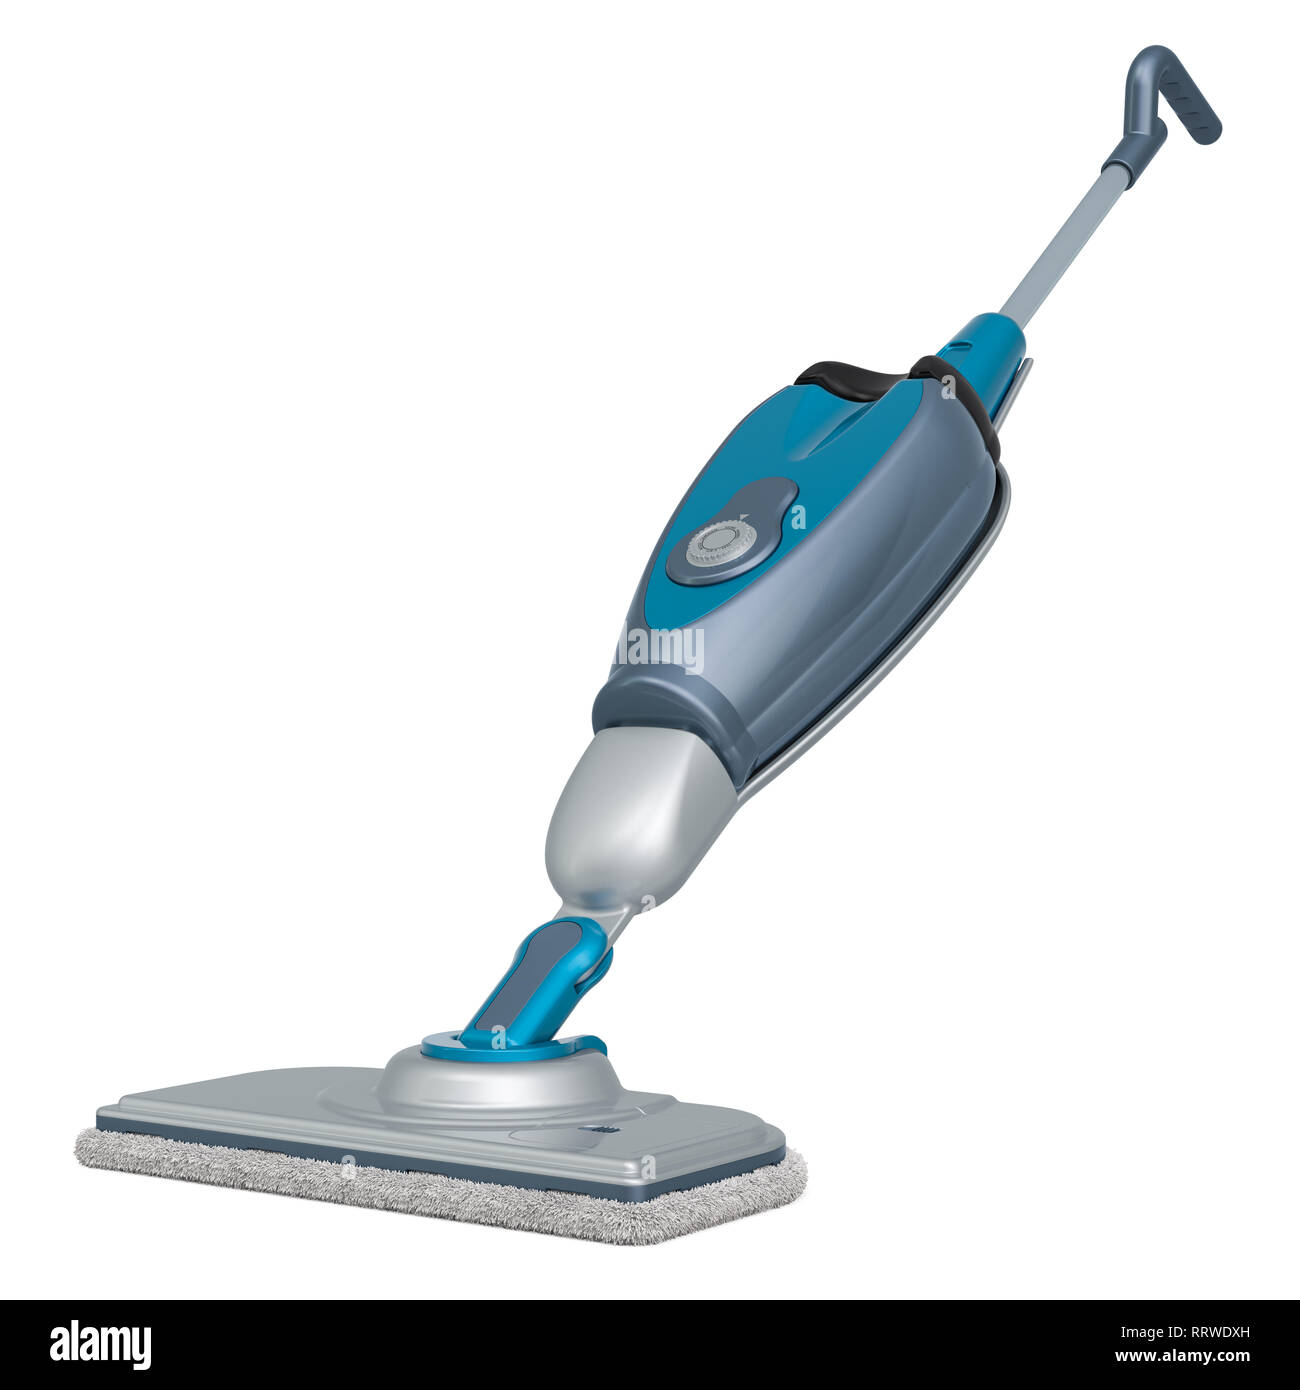 Steam mop, 3D rendering isolated on white background - Stock Image